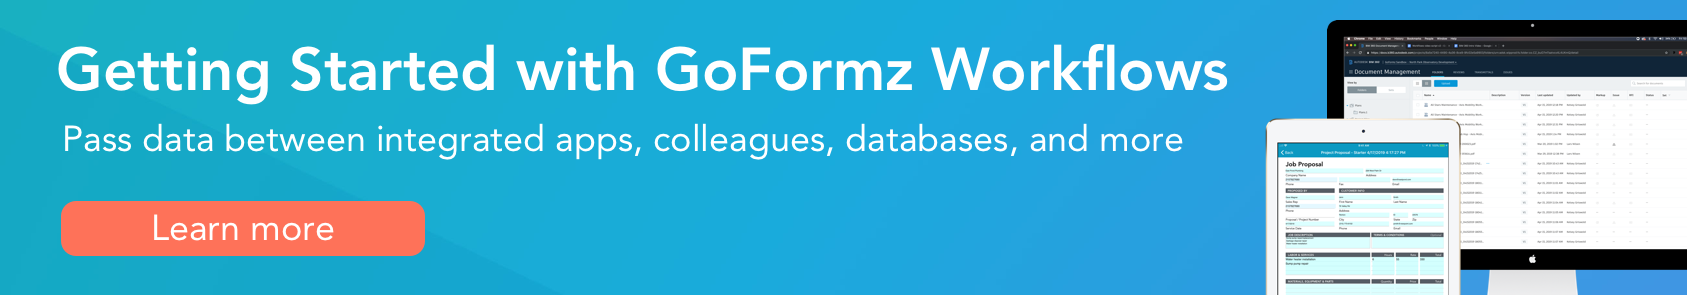 Click here to learn how to get started with GoFormz workflows